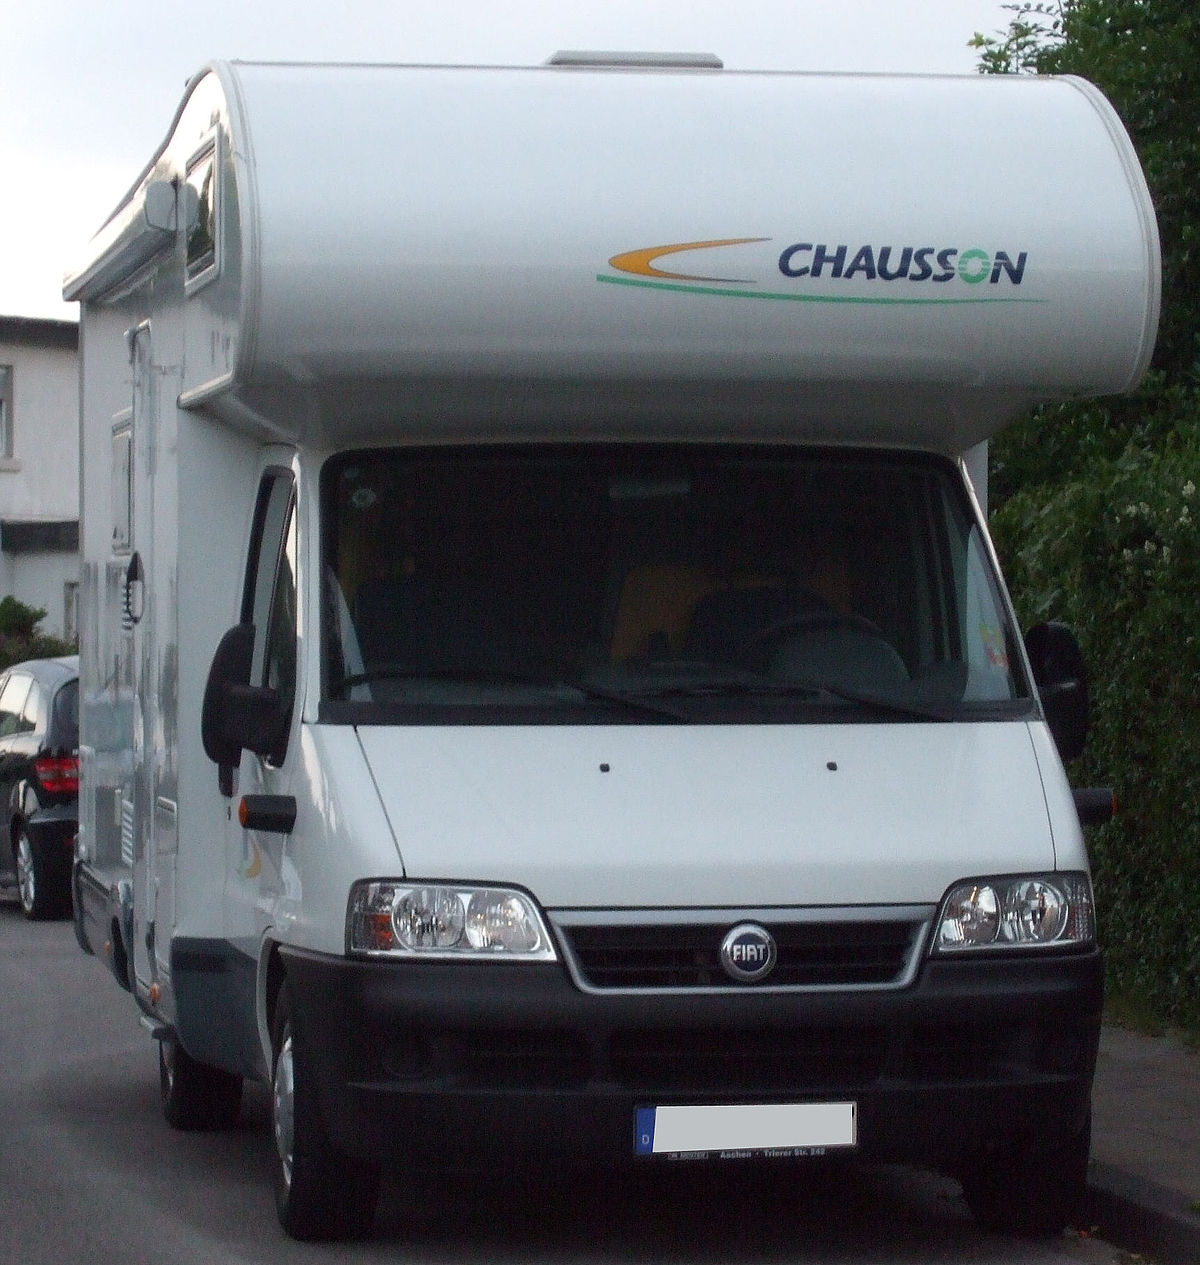 File:Fiat Chausson Alkoven-Wohnmobil.jpg - Wikimedia Commons